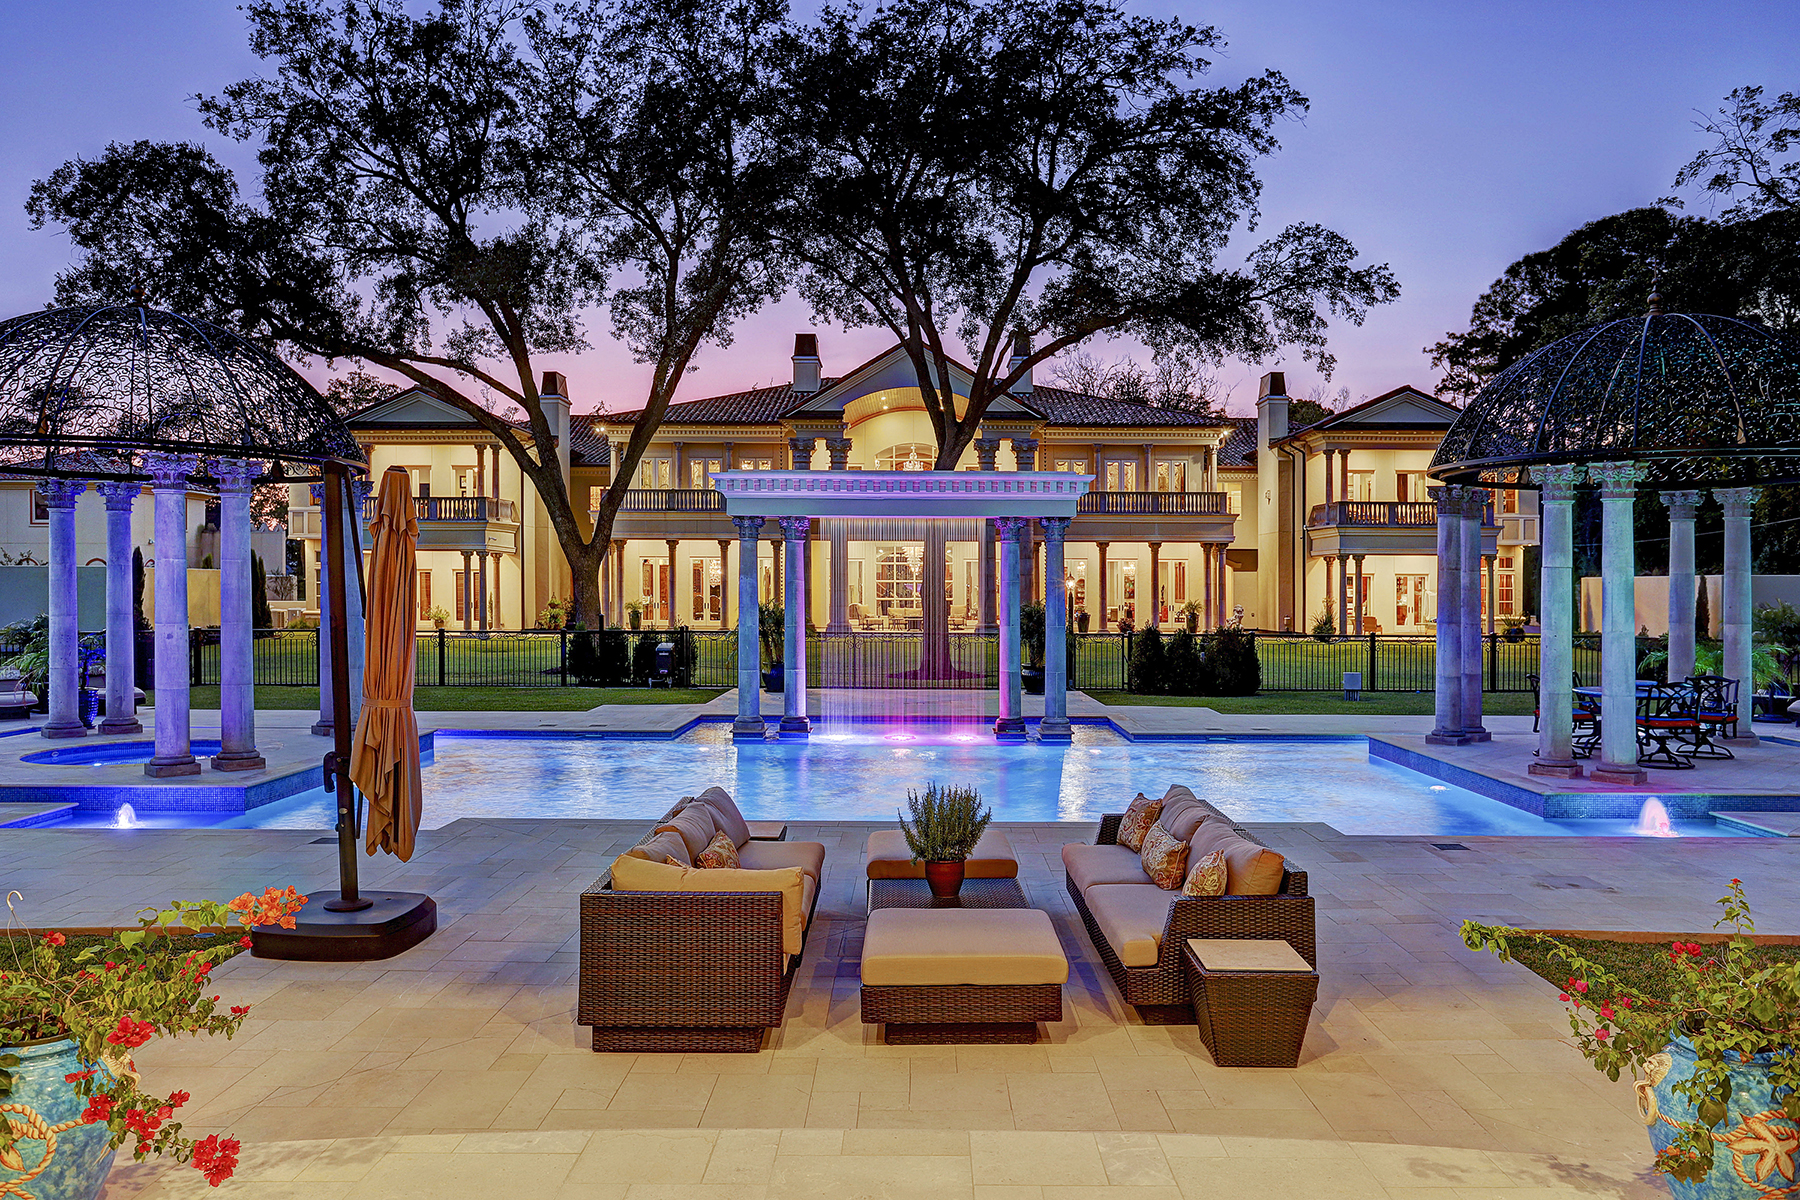 Single Family Homes for Sale at 6 Rivercrest Drive 6 West Rivercrest Drive Houston, Texas 77042 United States